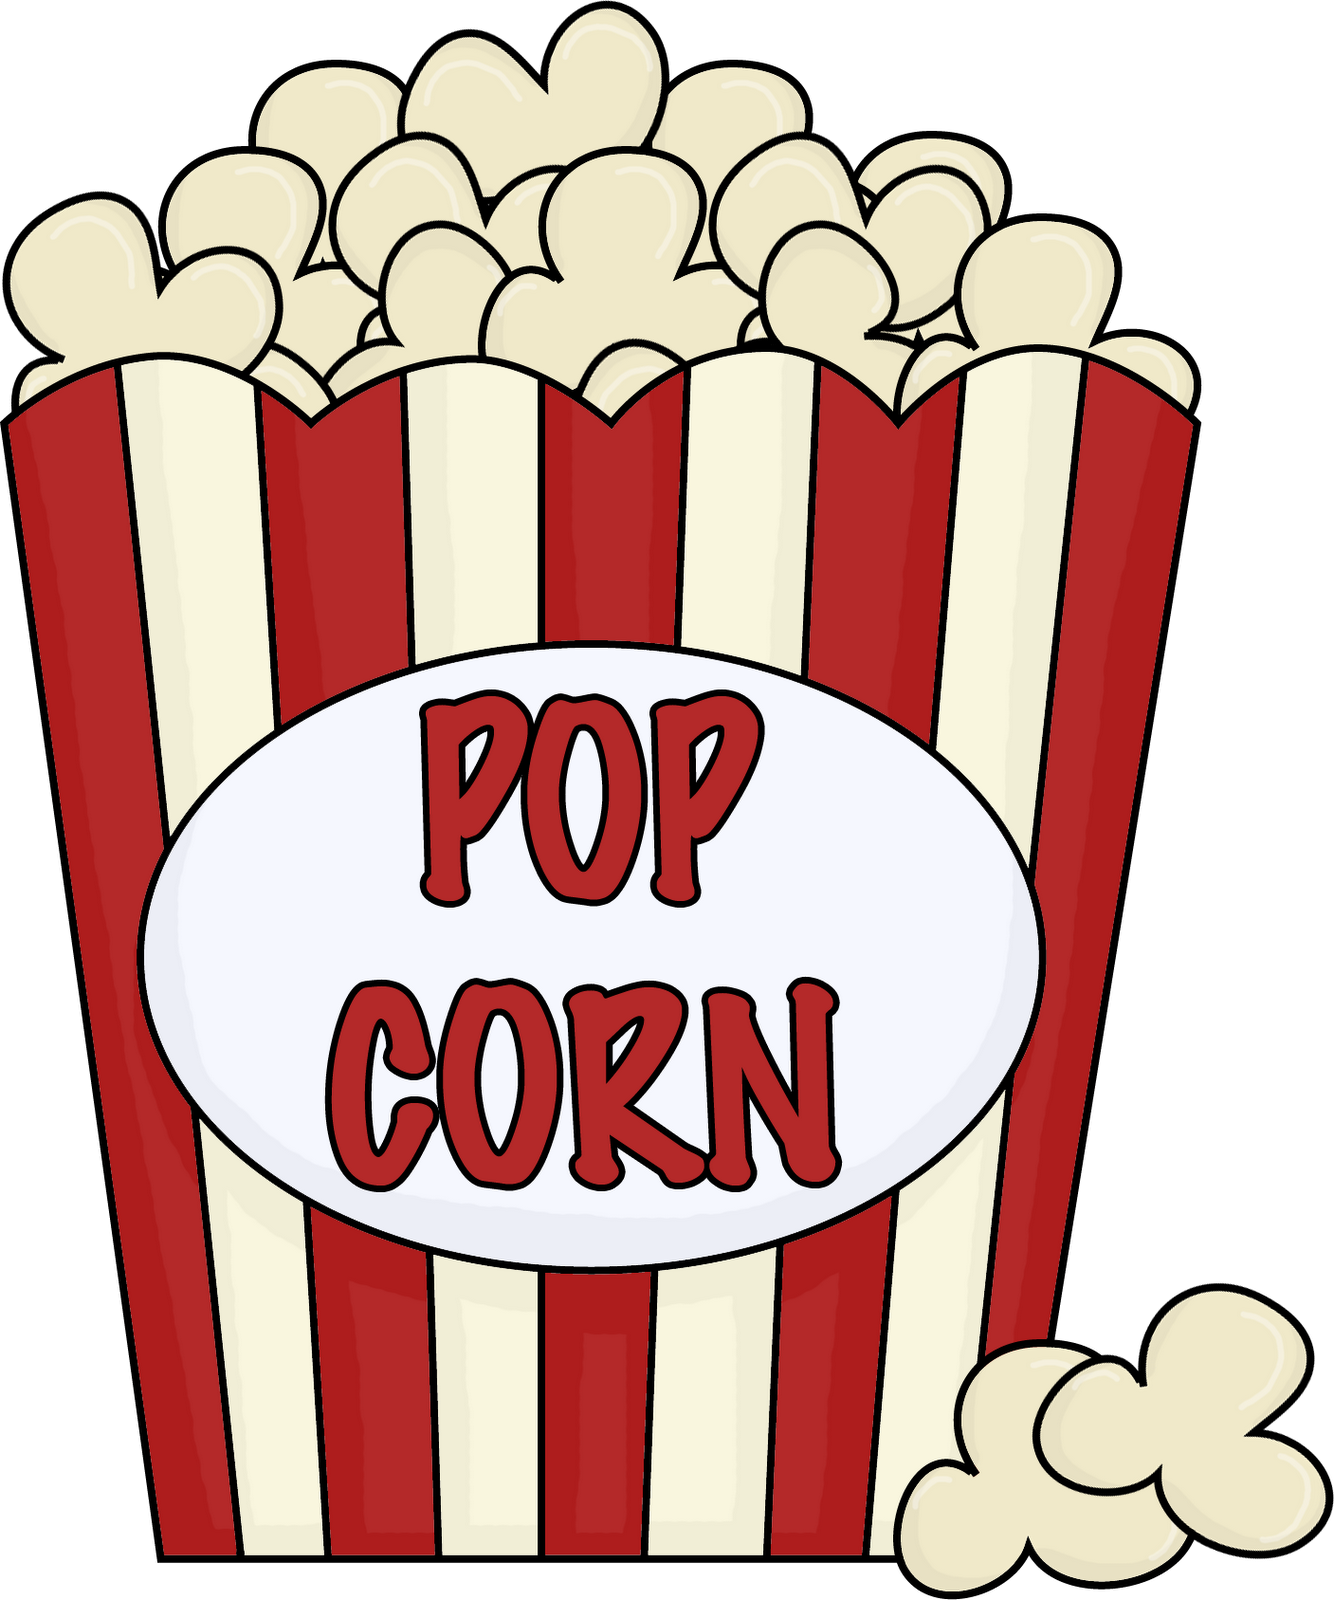 Popcorn clip art black and white outline free